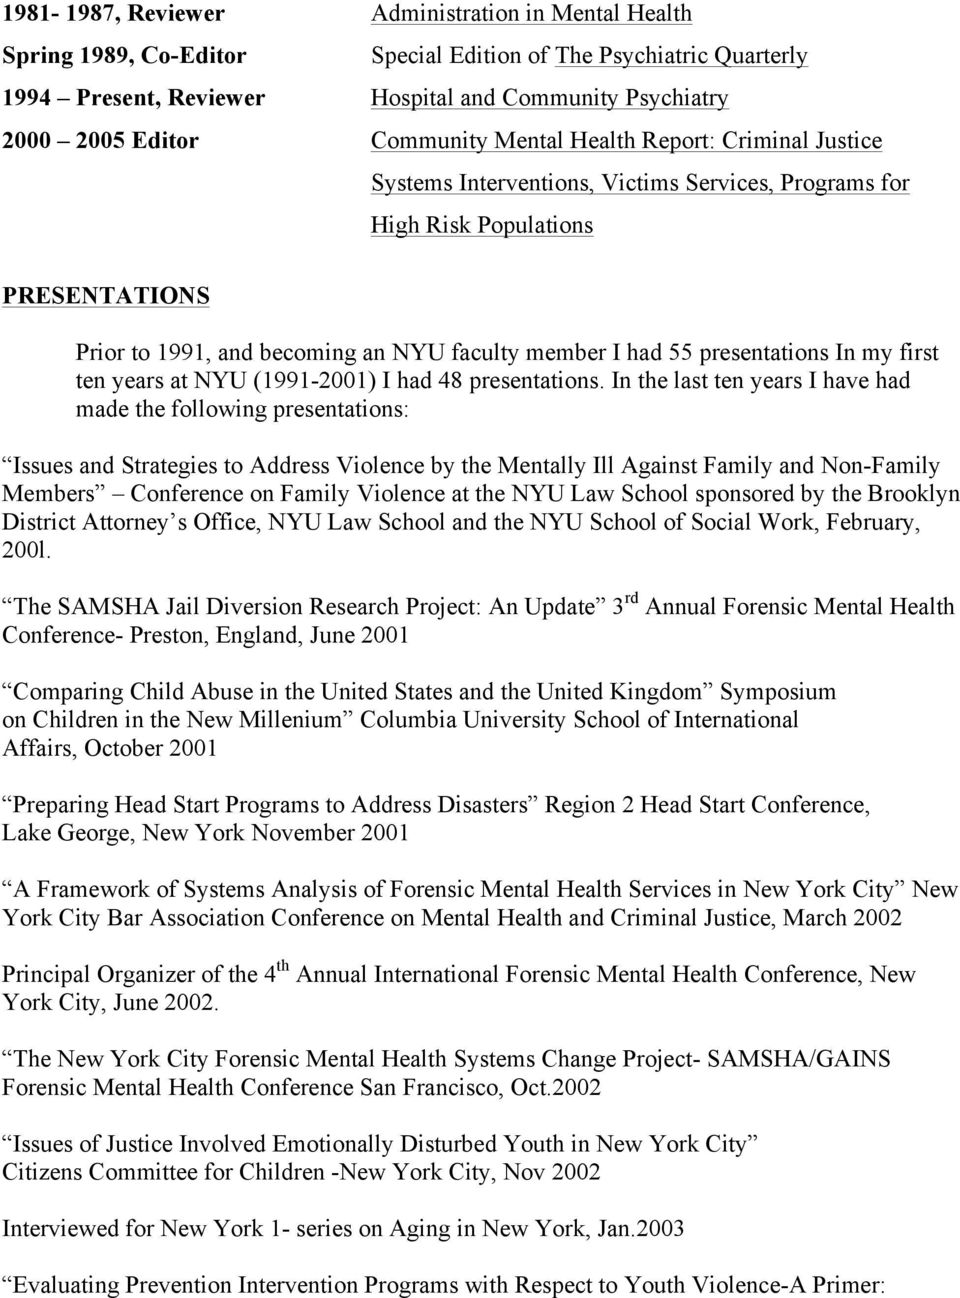 presentations In my first ten years at NYU (1991-2001) I had 48 presentations.